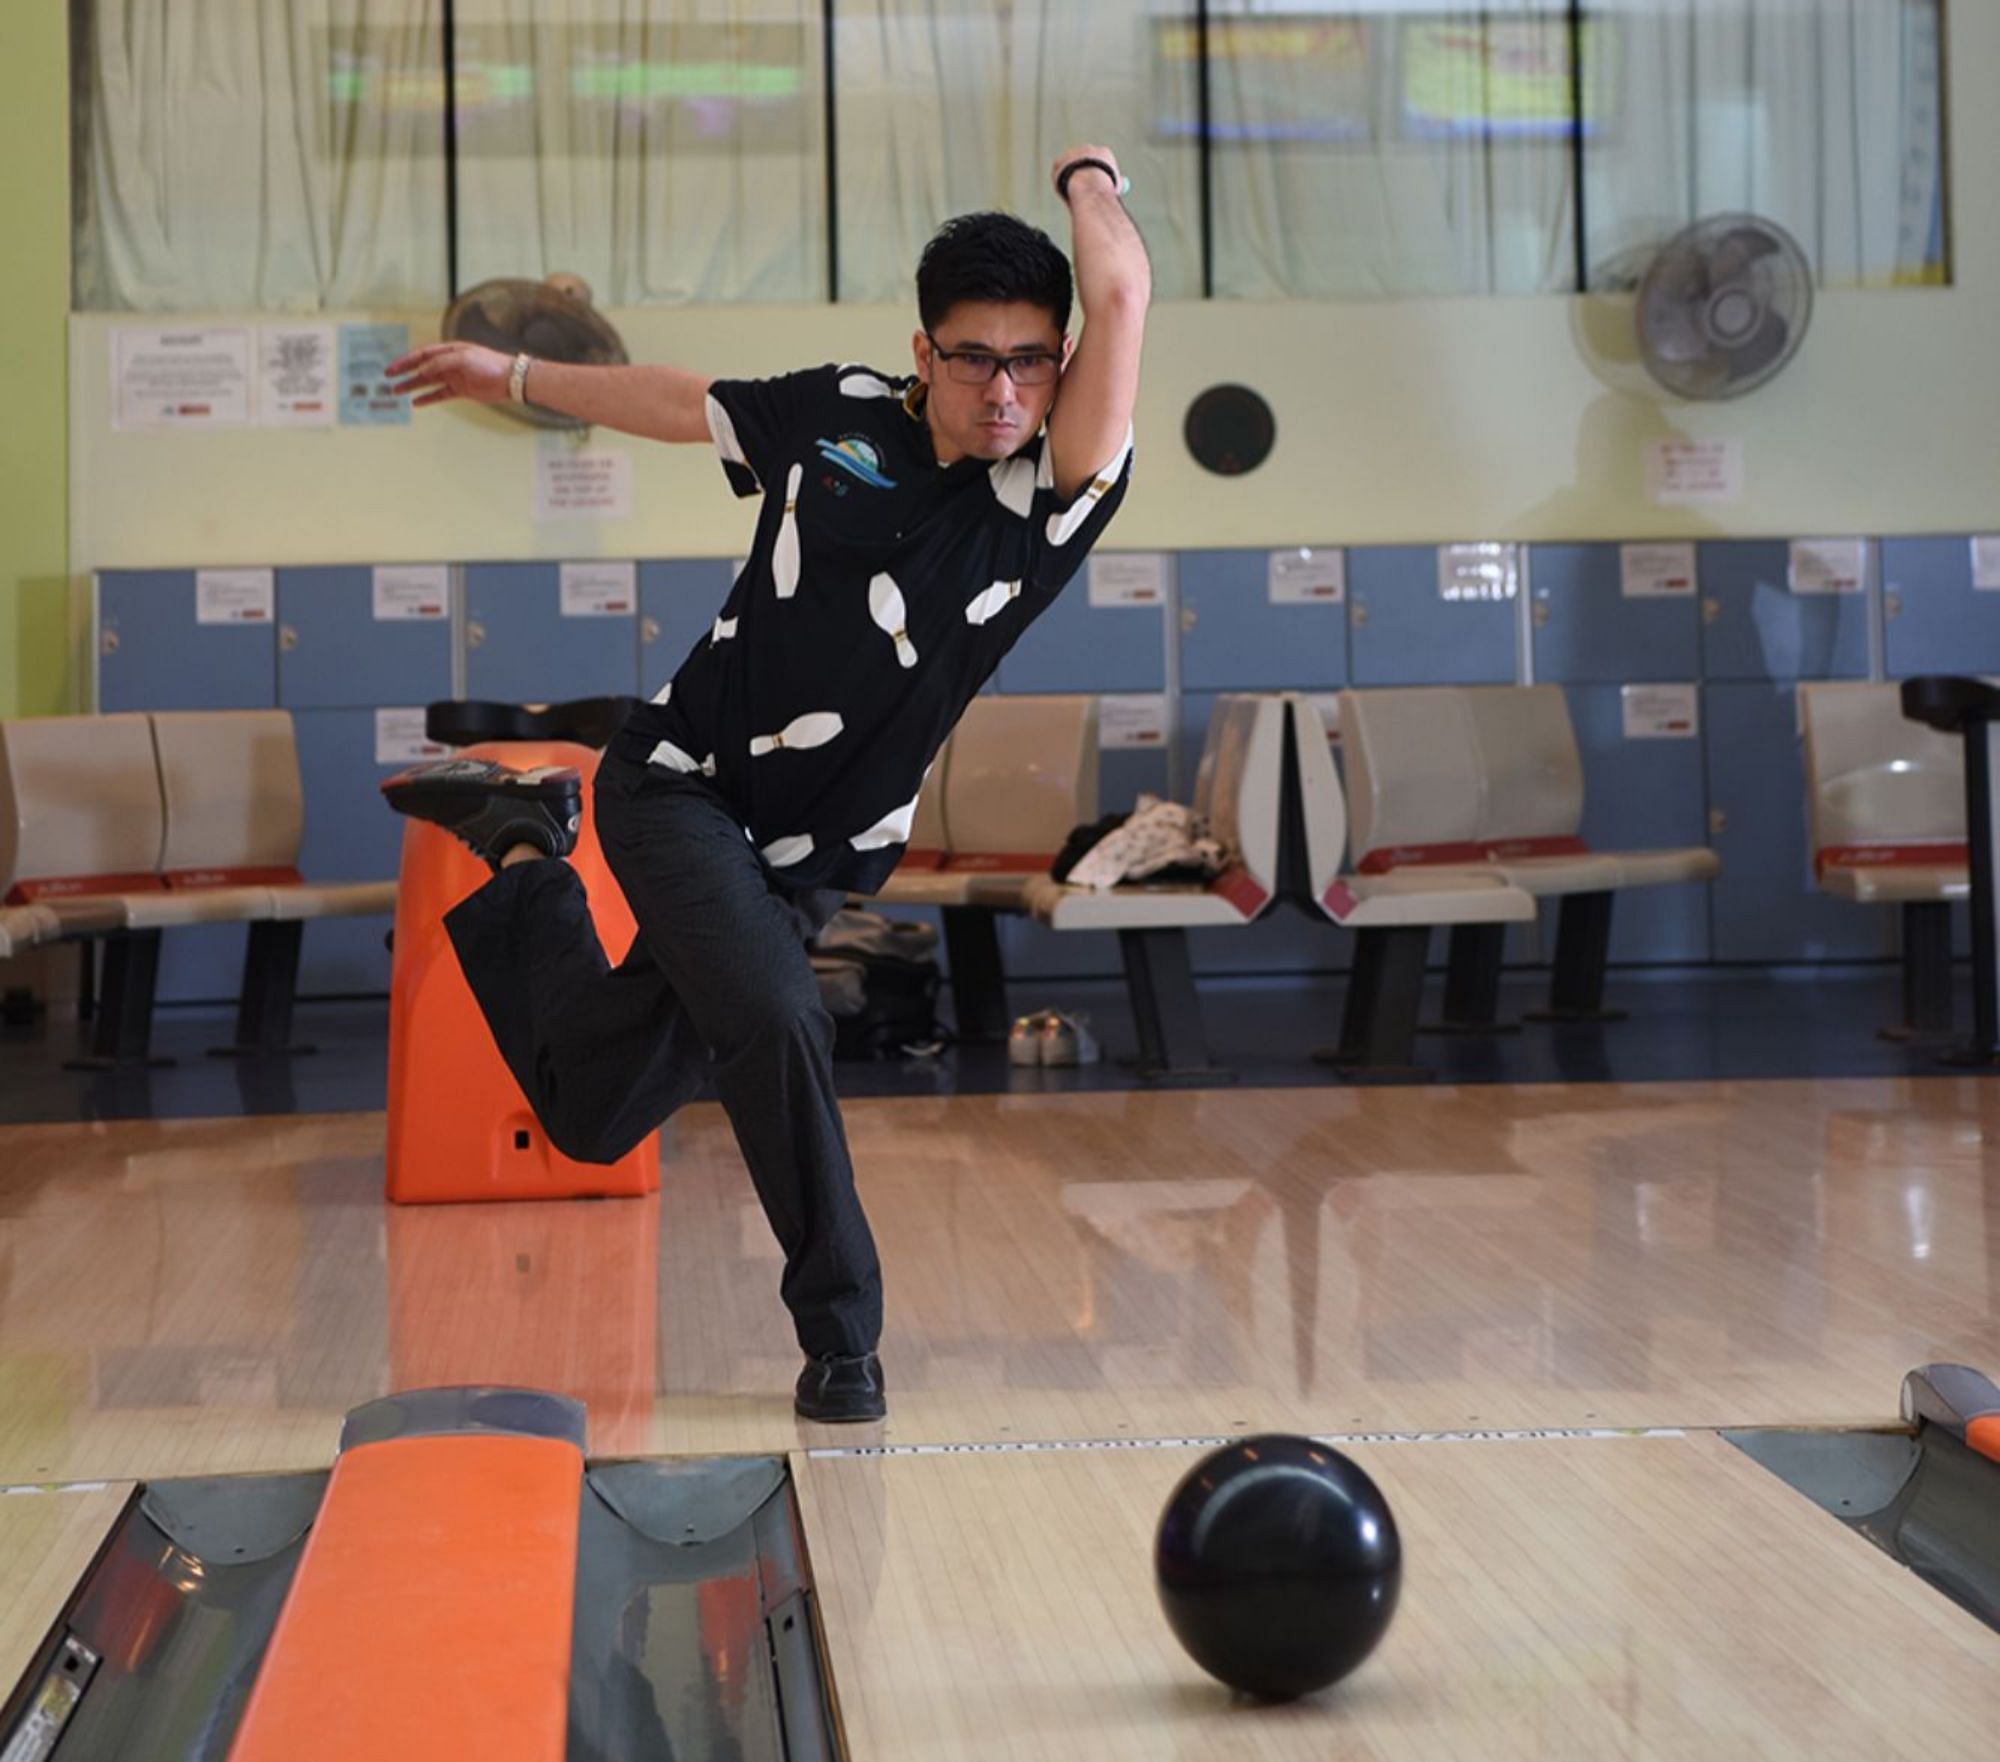 National Bowler Remy Ong